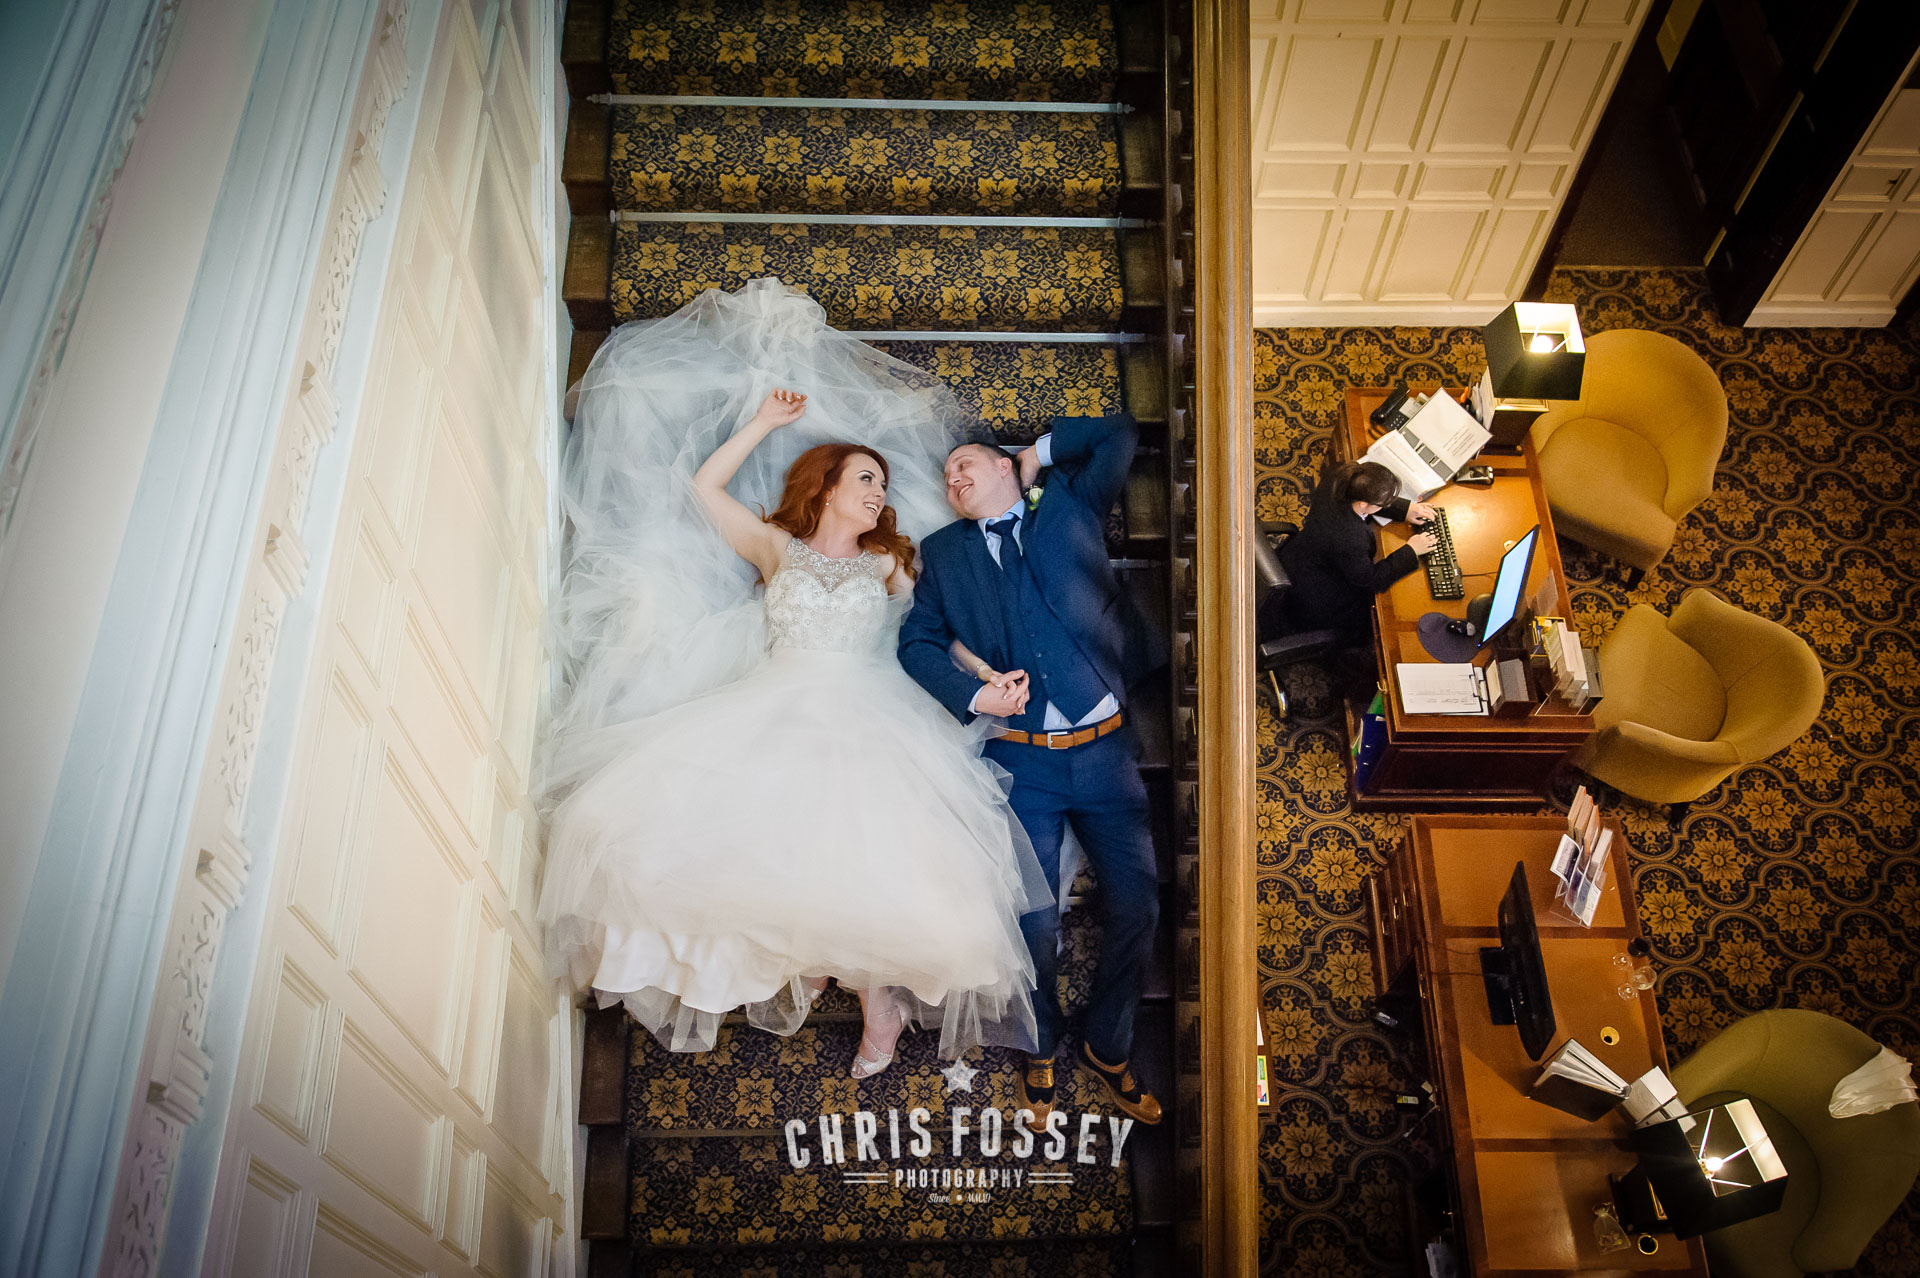 Warwickshire Wedding Photography Portfolio-Dumbleton Hall Hotel Worcestershire Wedding Photographer Chris Fossey Photography (5)-62